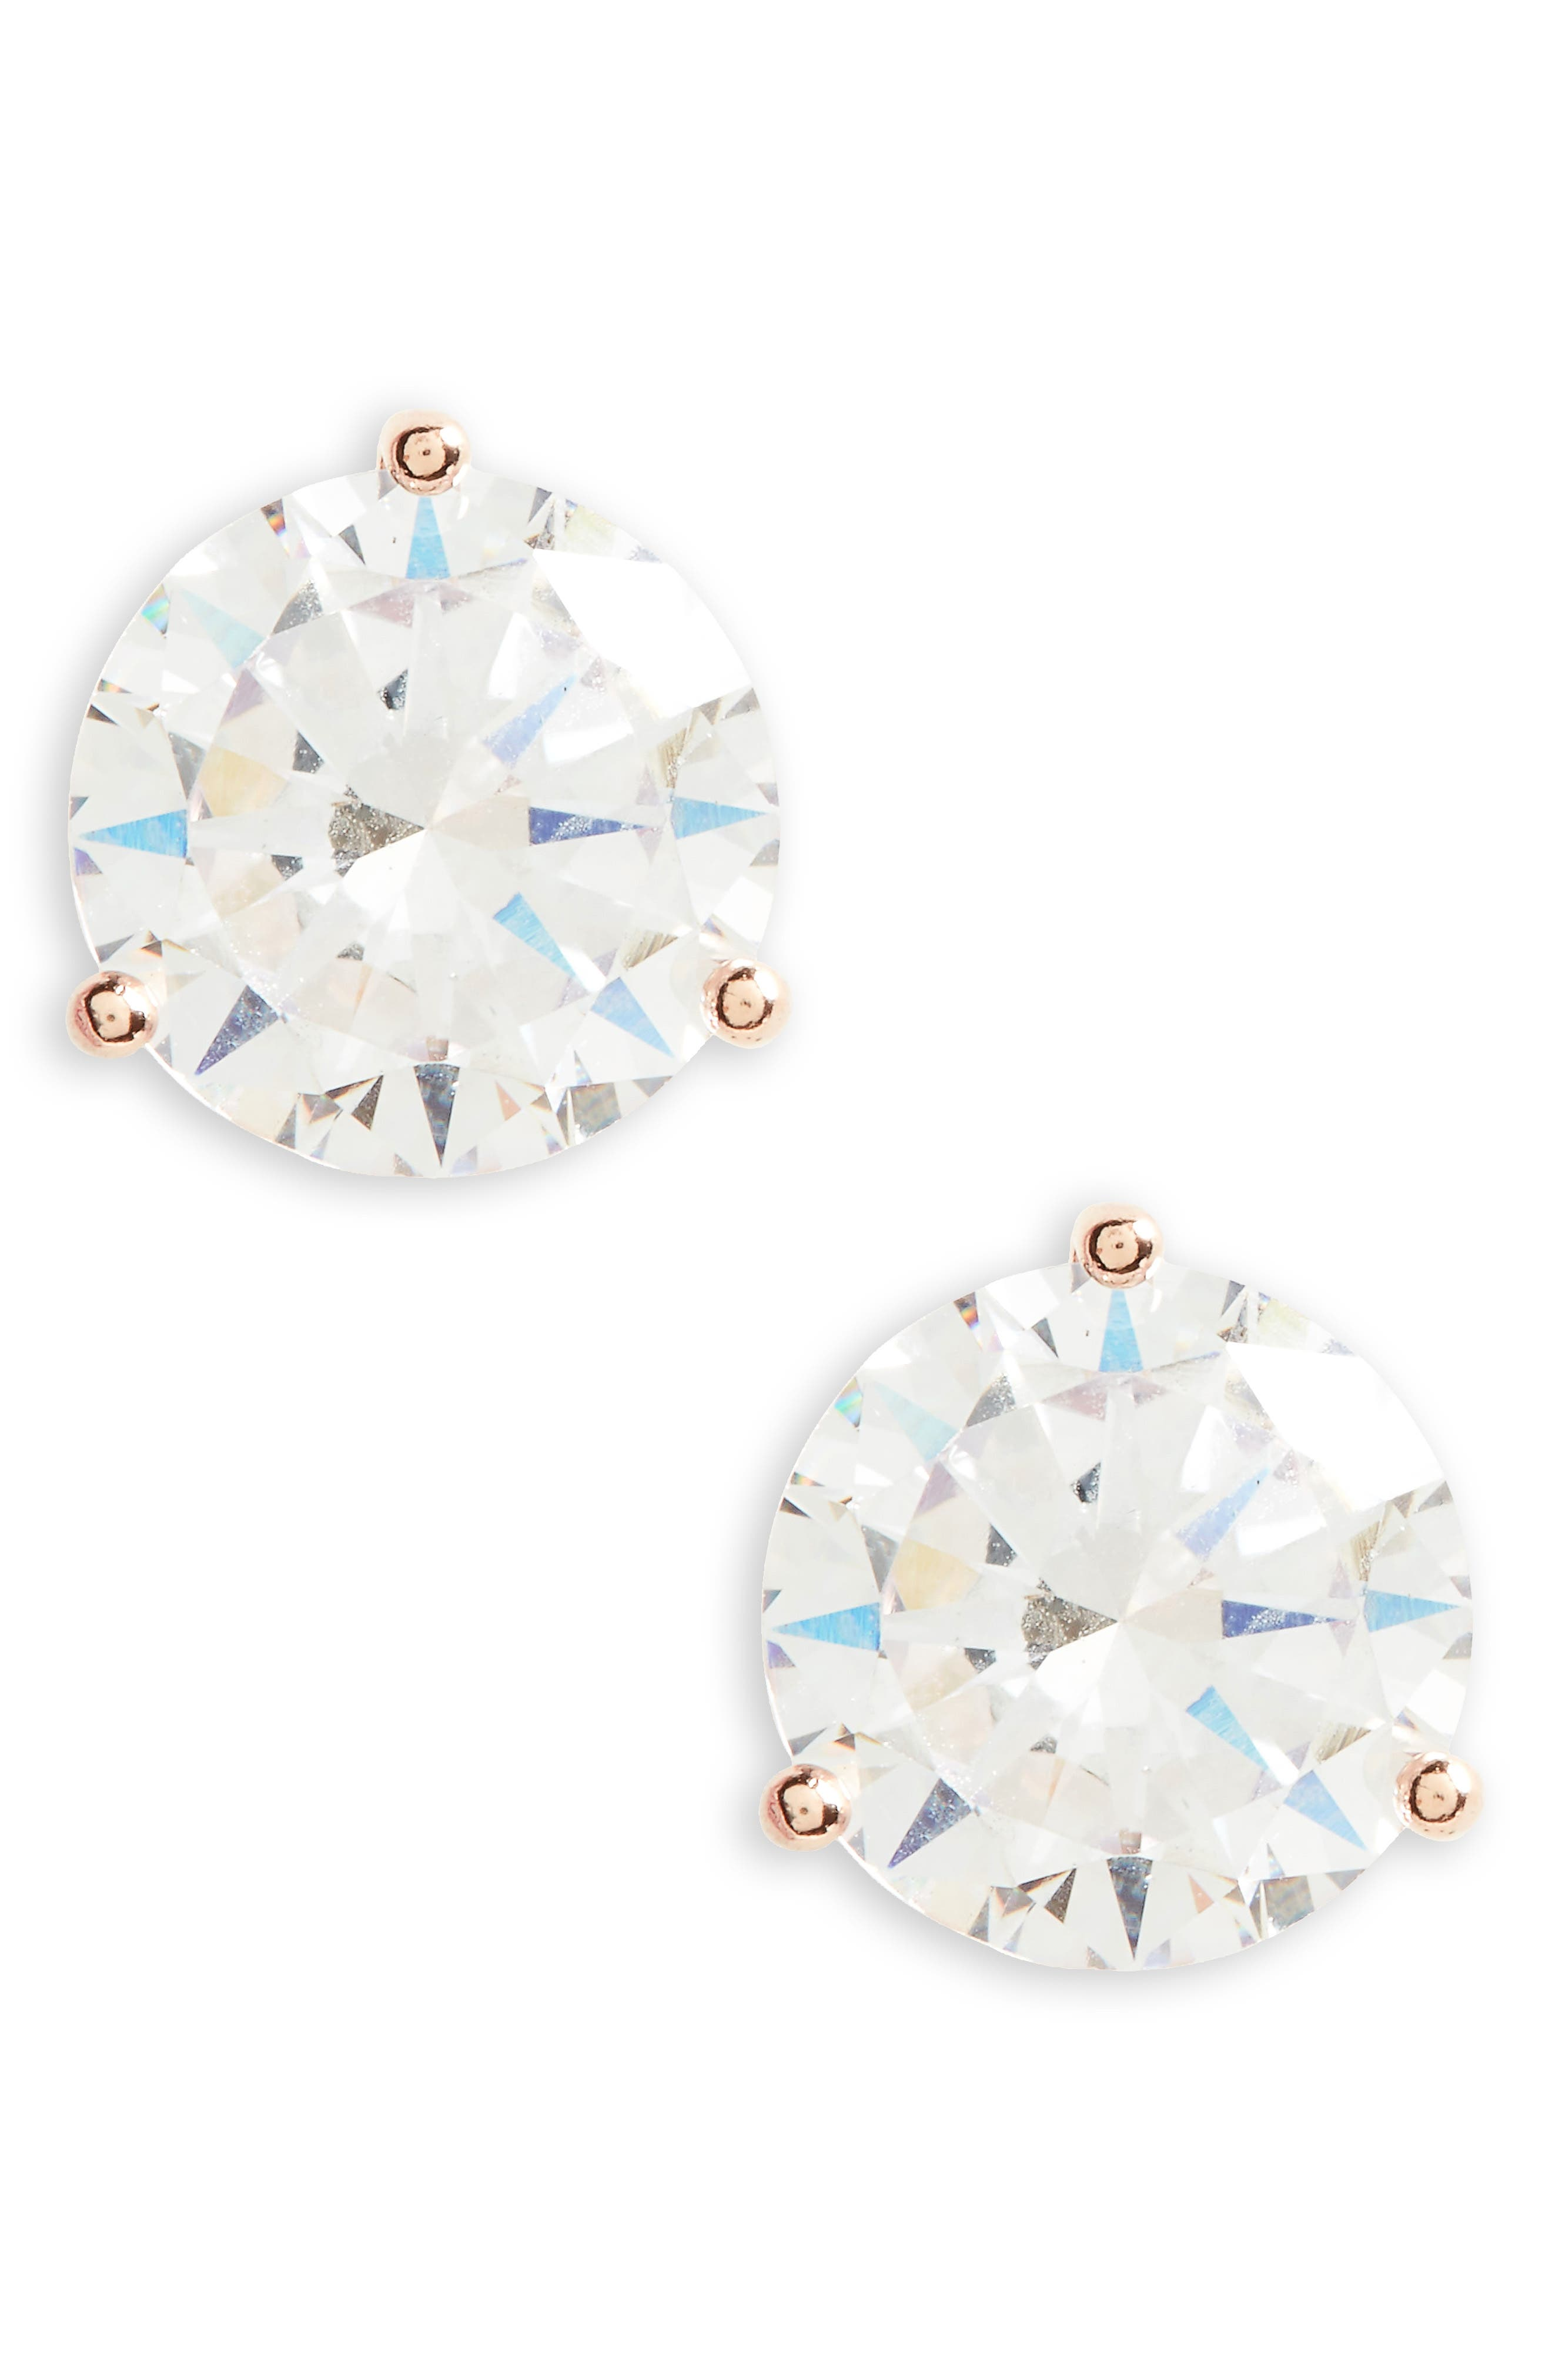 6ct tw Cubic Zirconia Earrings,                             Main thumbnail 1, color,                             CLEAR- ROSE GOLD